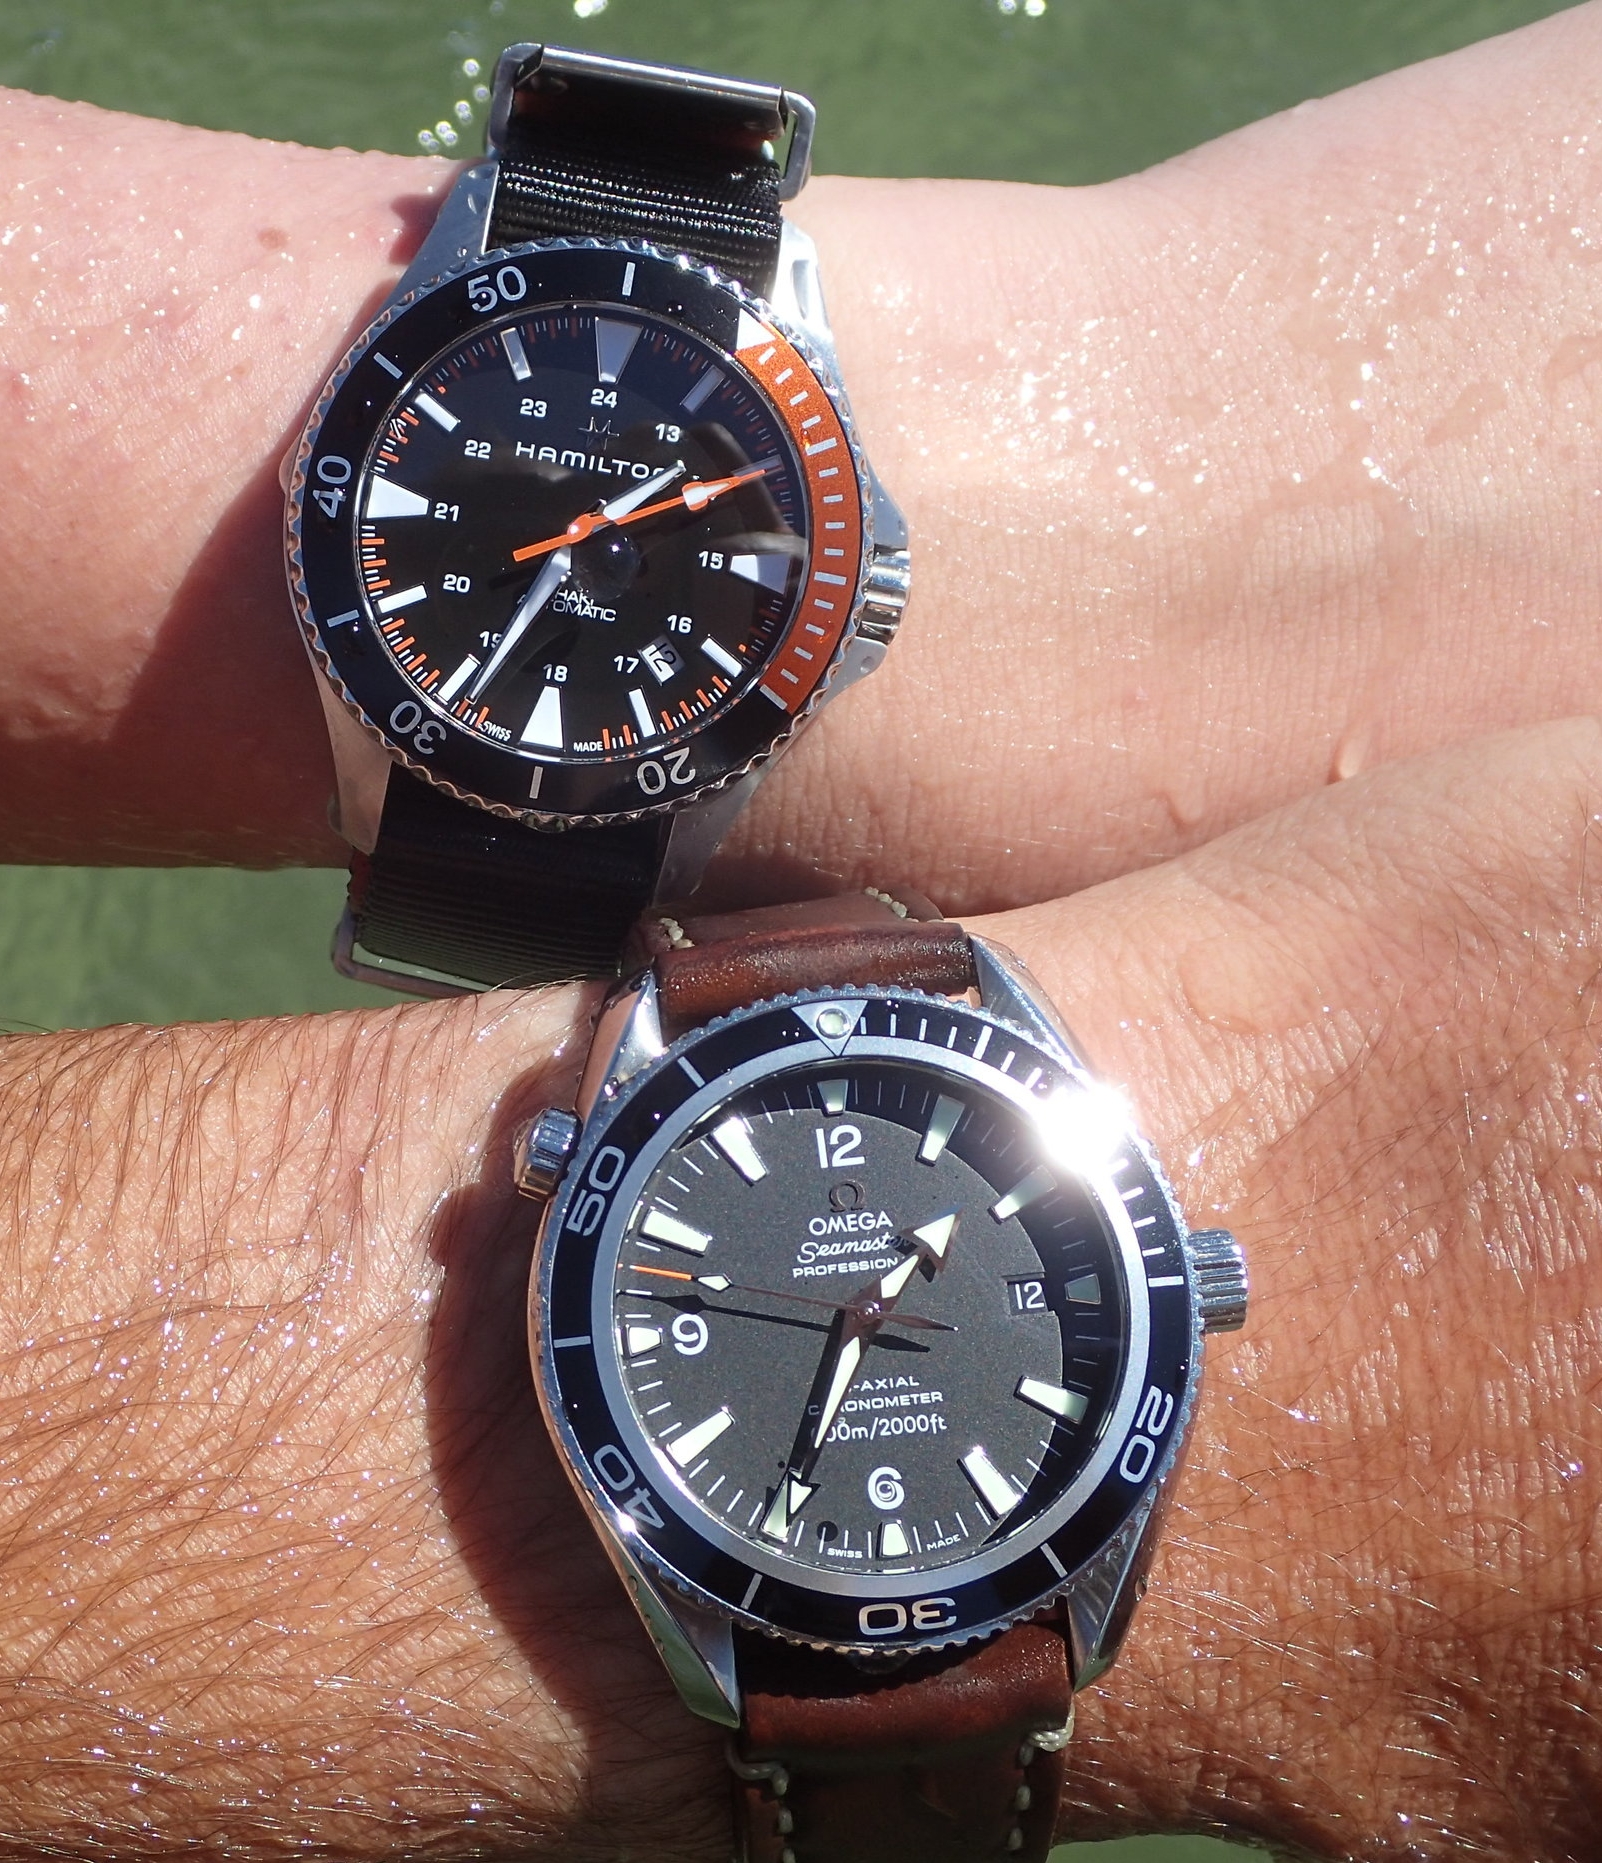 A pair of equally competent tools for a One Watch Life. Which would you pick?